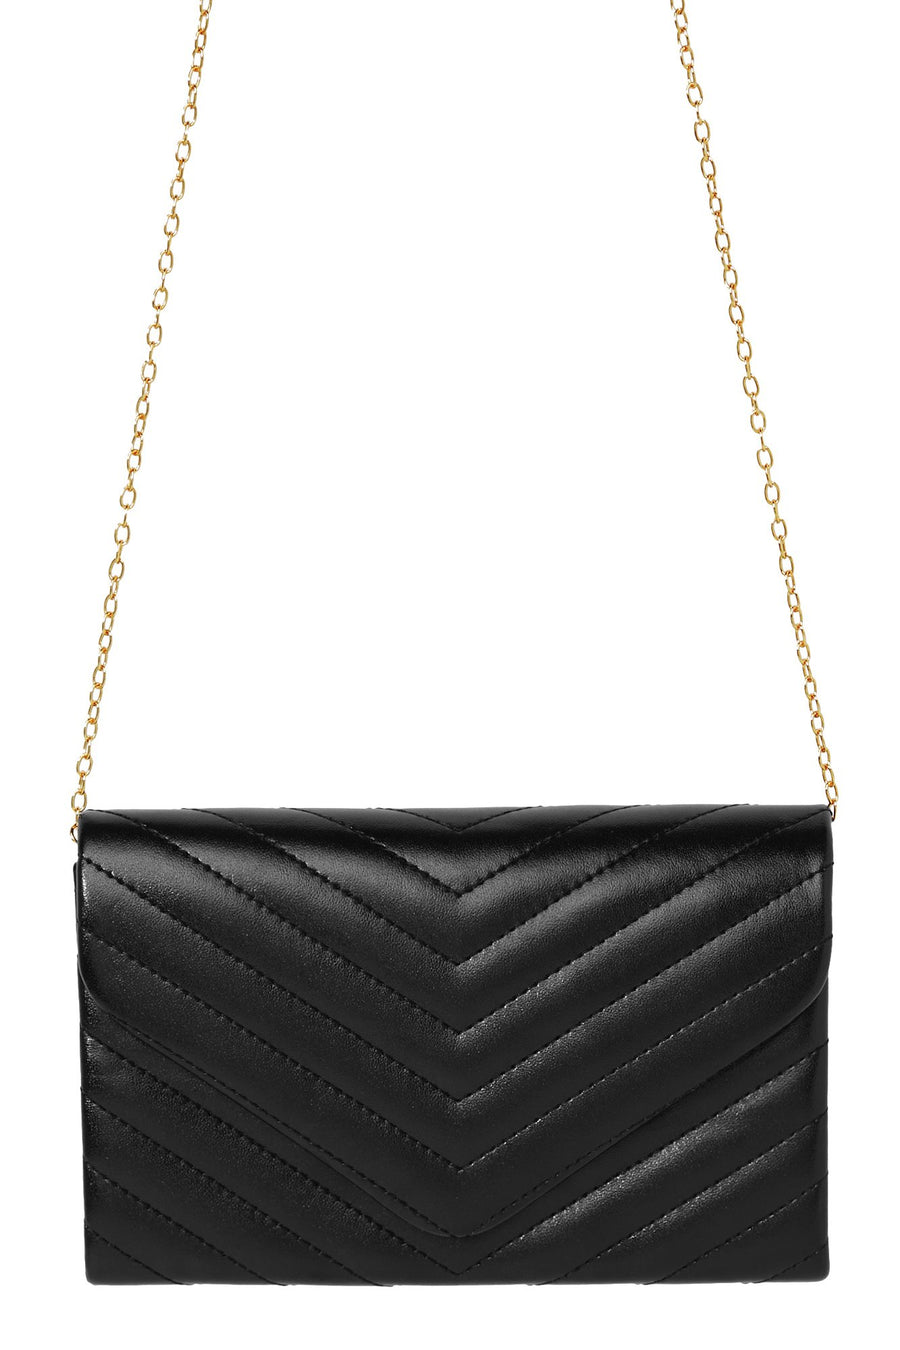 Quilty By Association Mini Bag - Black